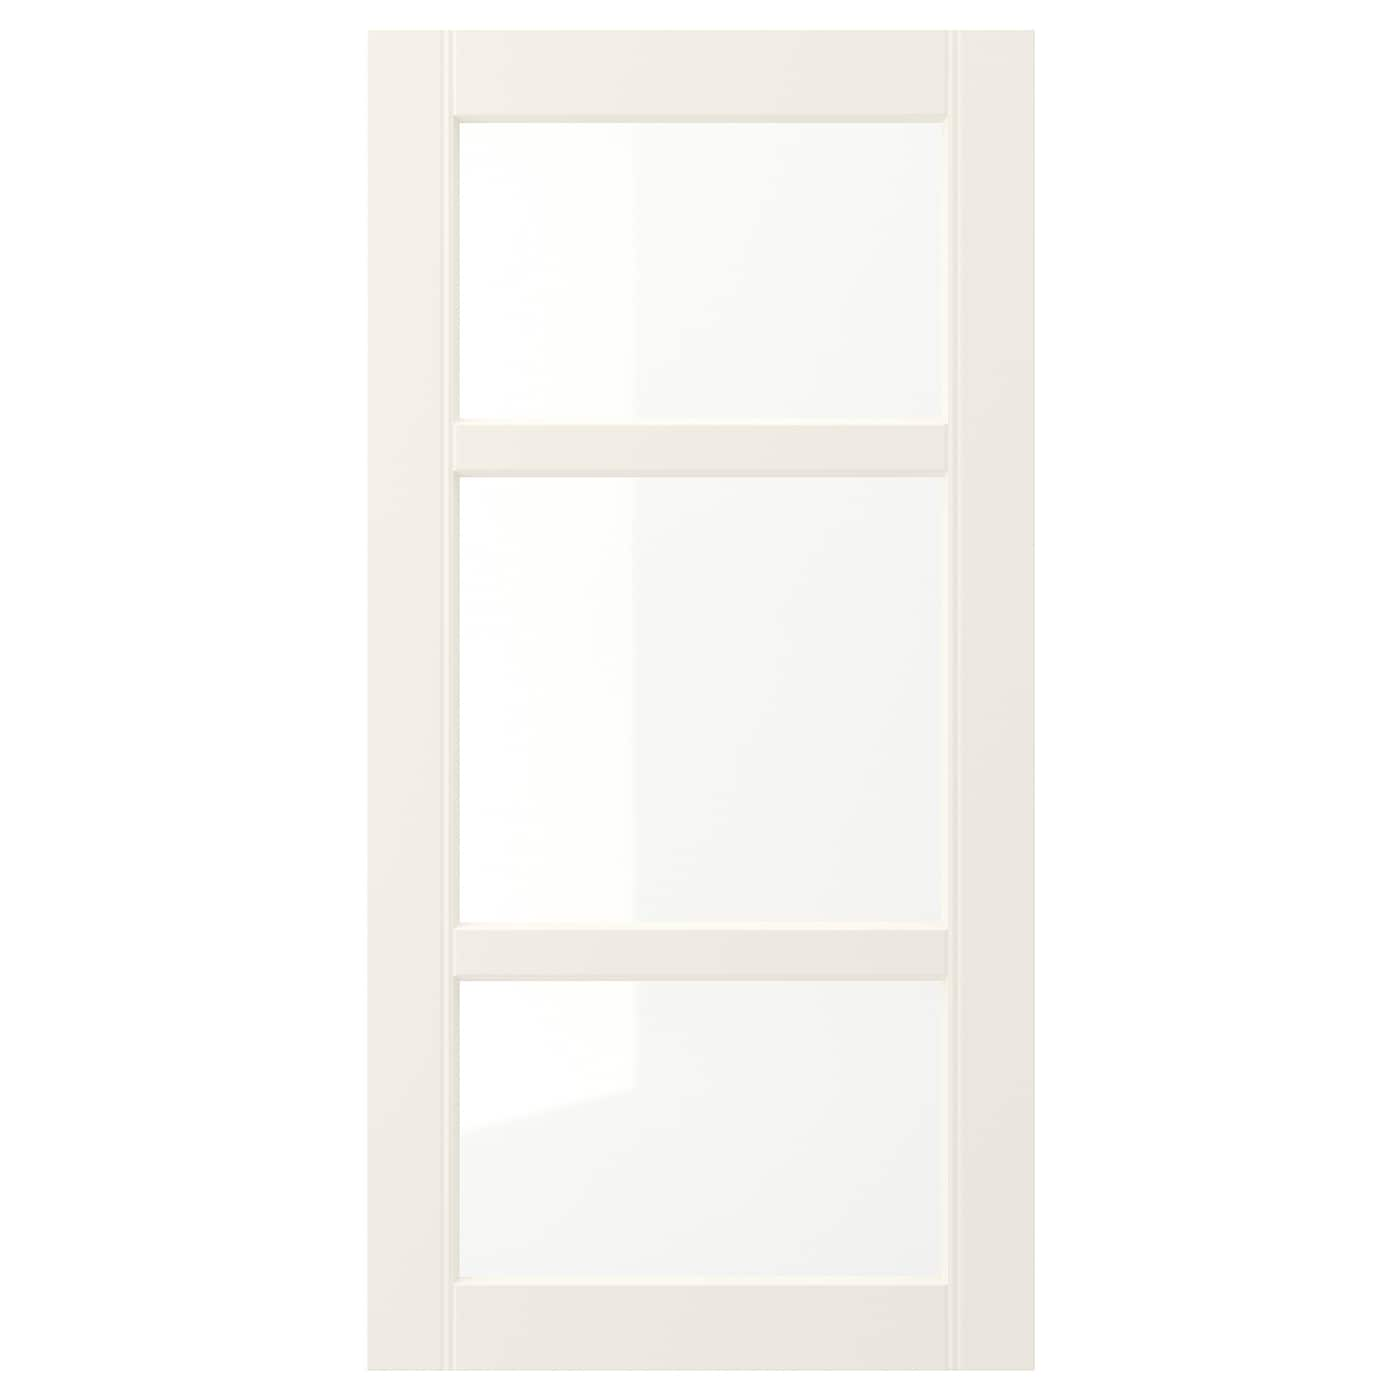 IKEA HITTARP glass door 25 year guarantee. Read about the terms in the guarantee brochure.